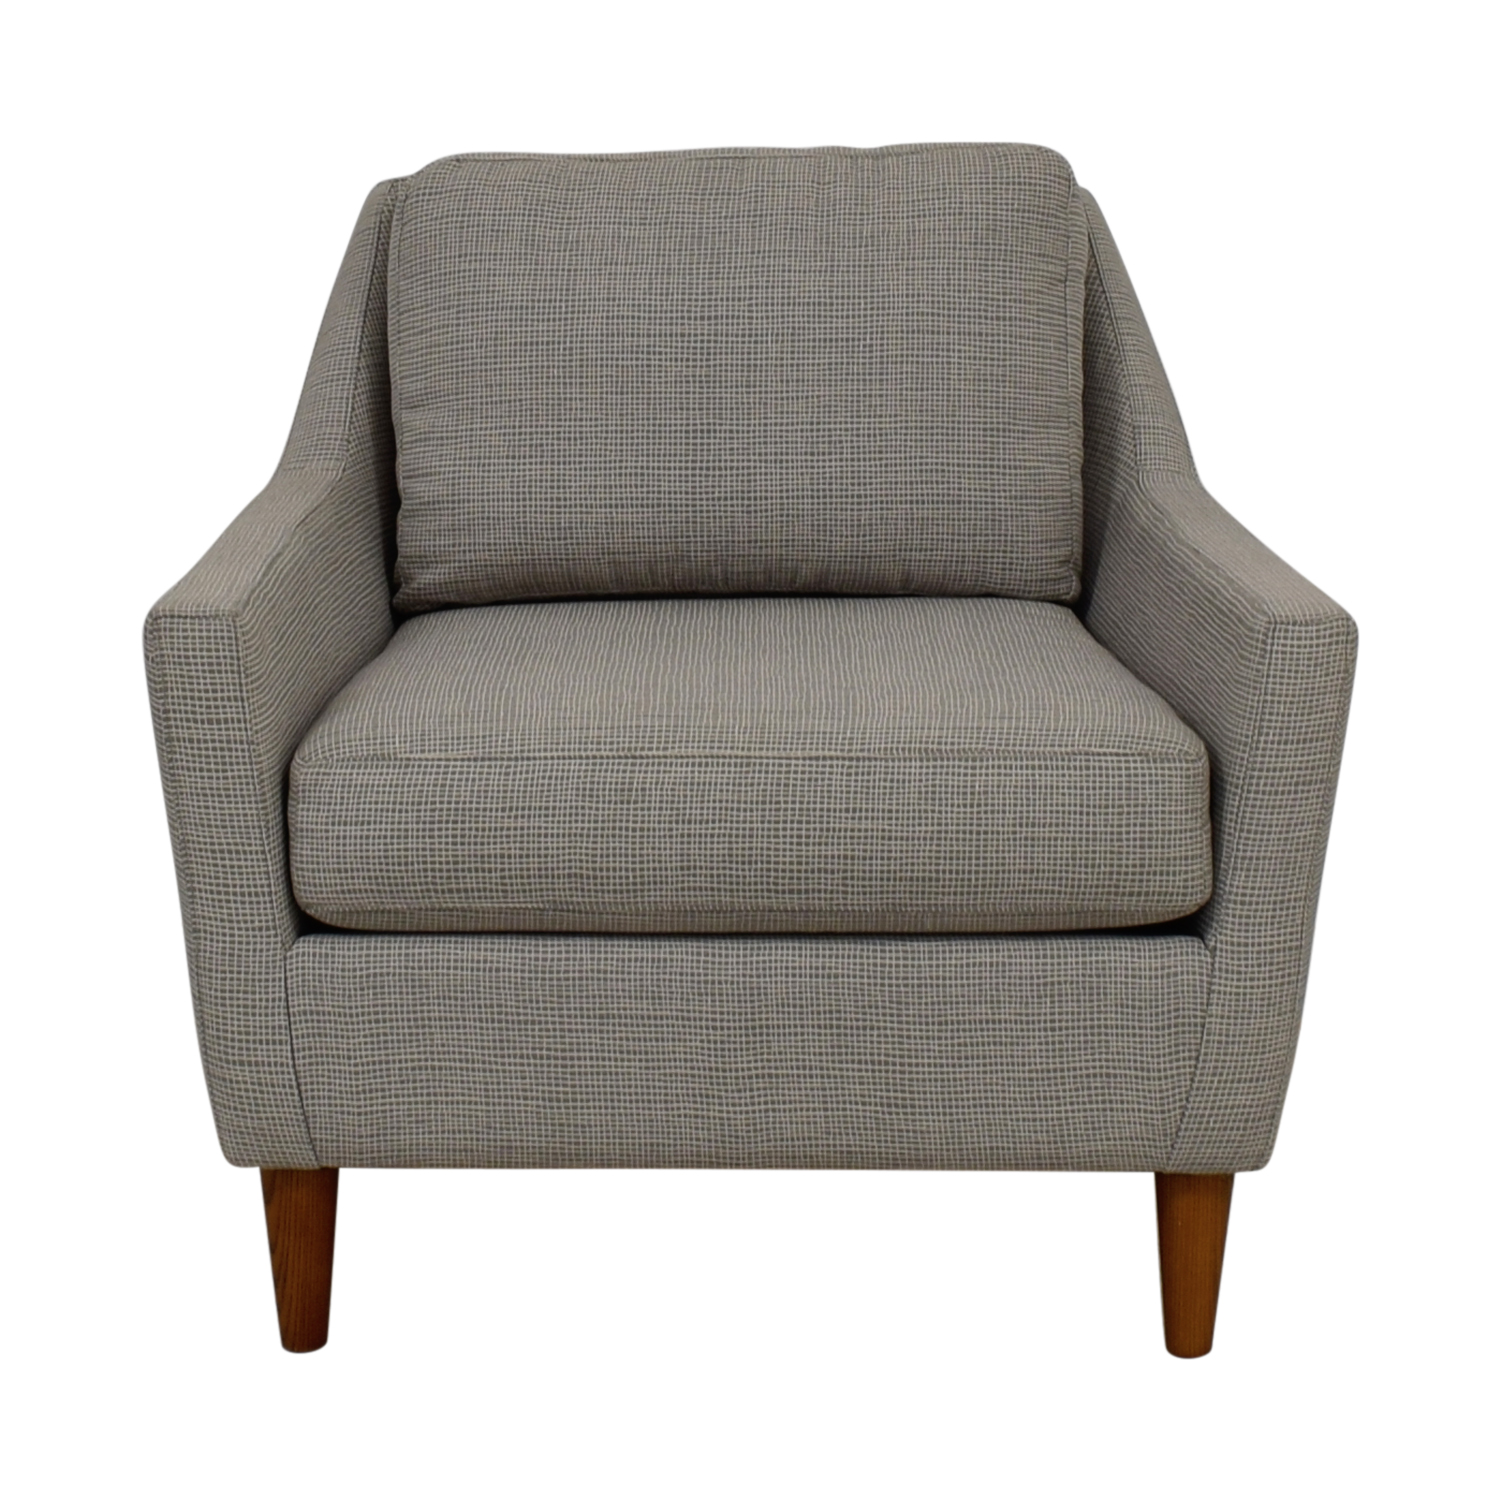 49 Off West Elm West Elm Everett Grey Accent Chair Chairs